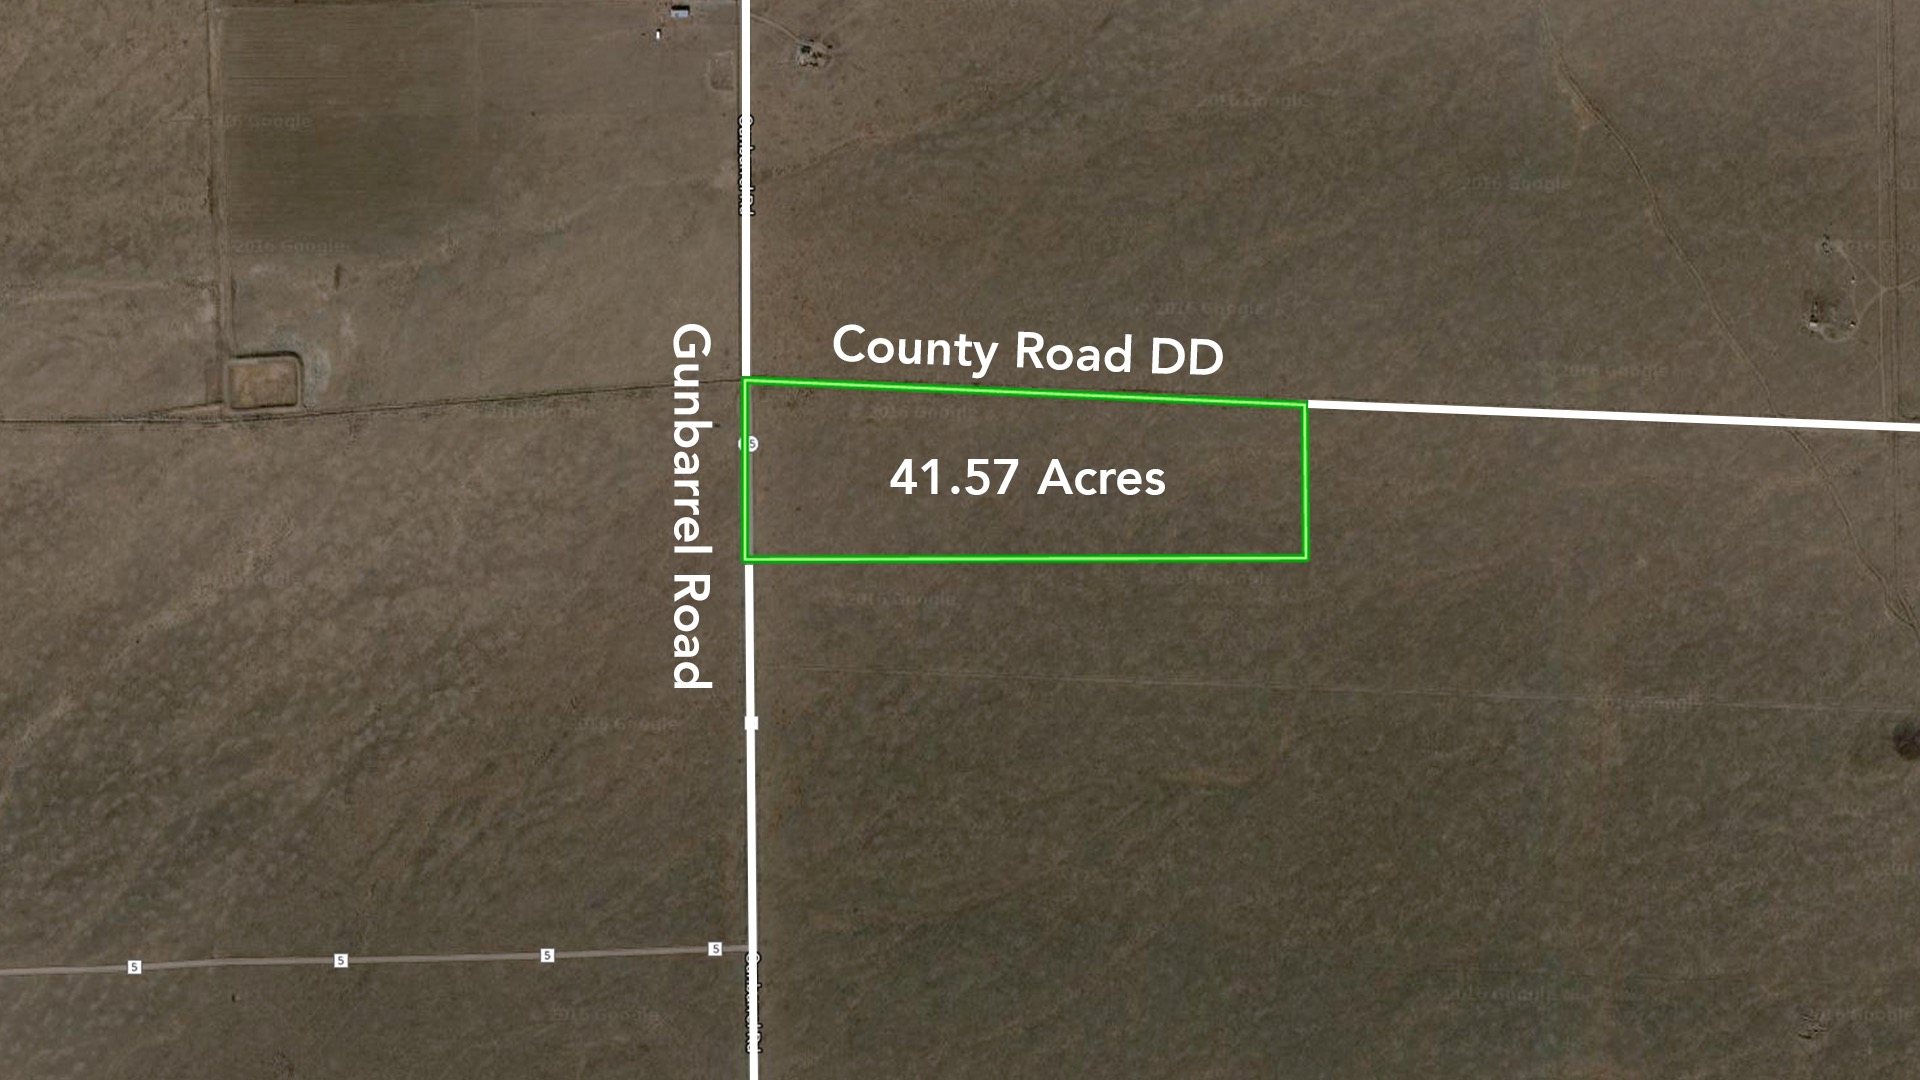 41.57 Acres at Corner of 2 County Roads